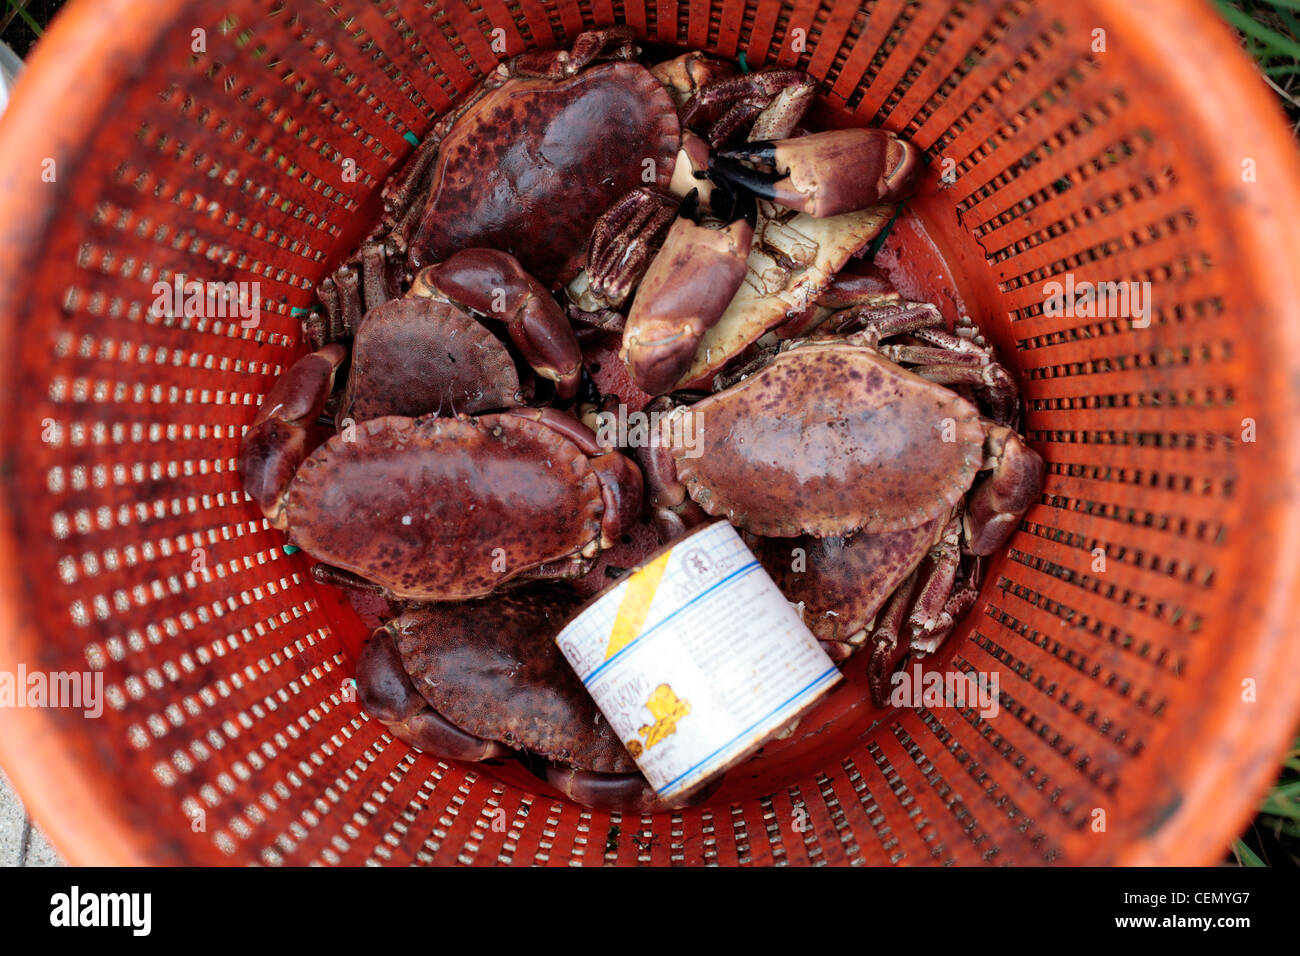 Crabs for sale on St Agnes, Scilly Isles, UK. - Stock Image